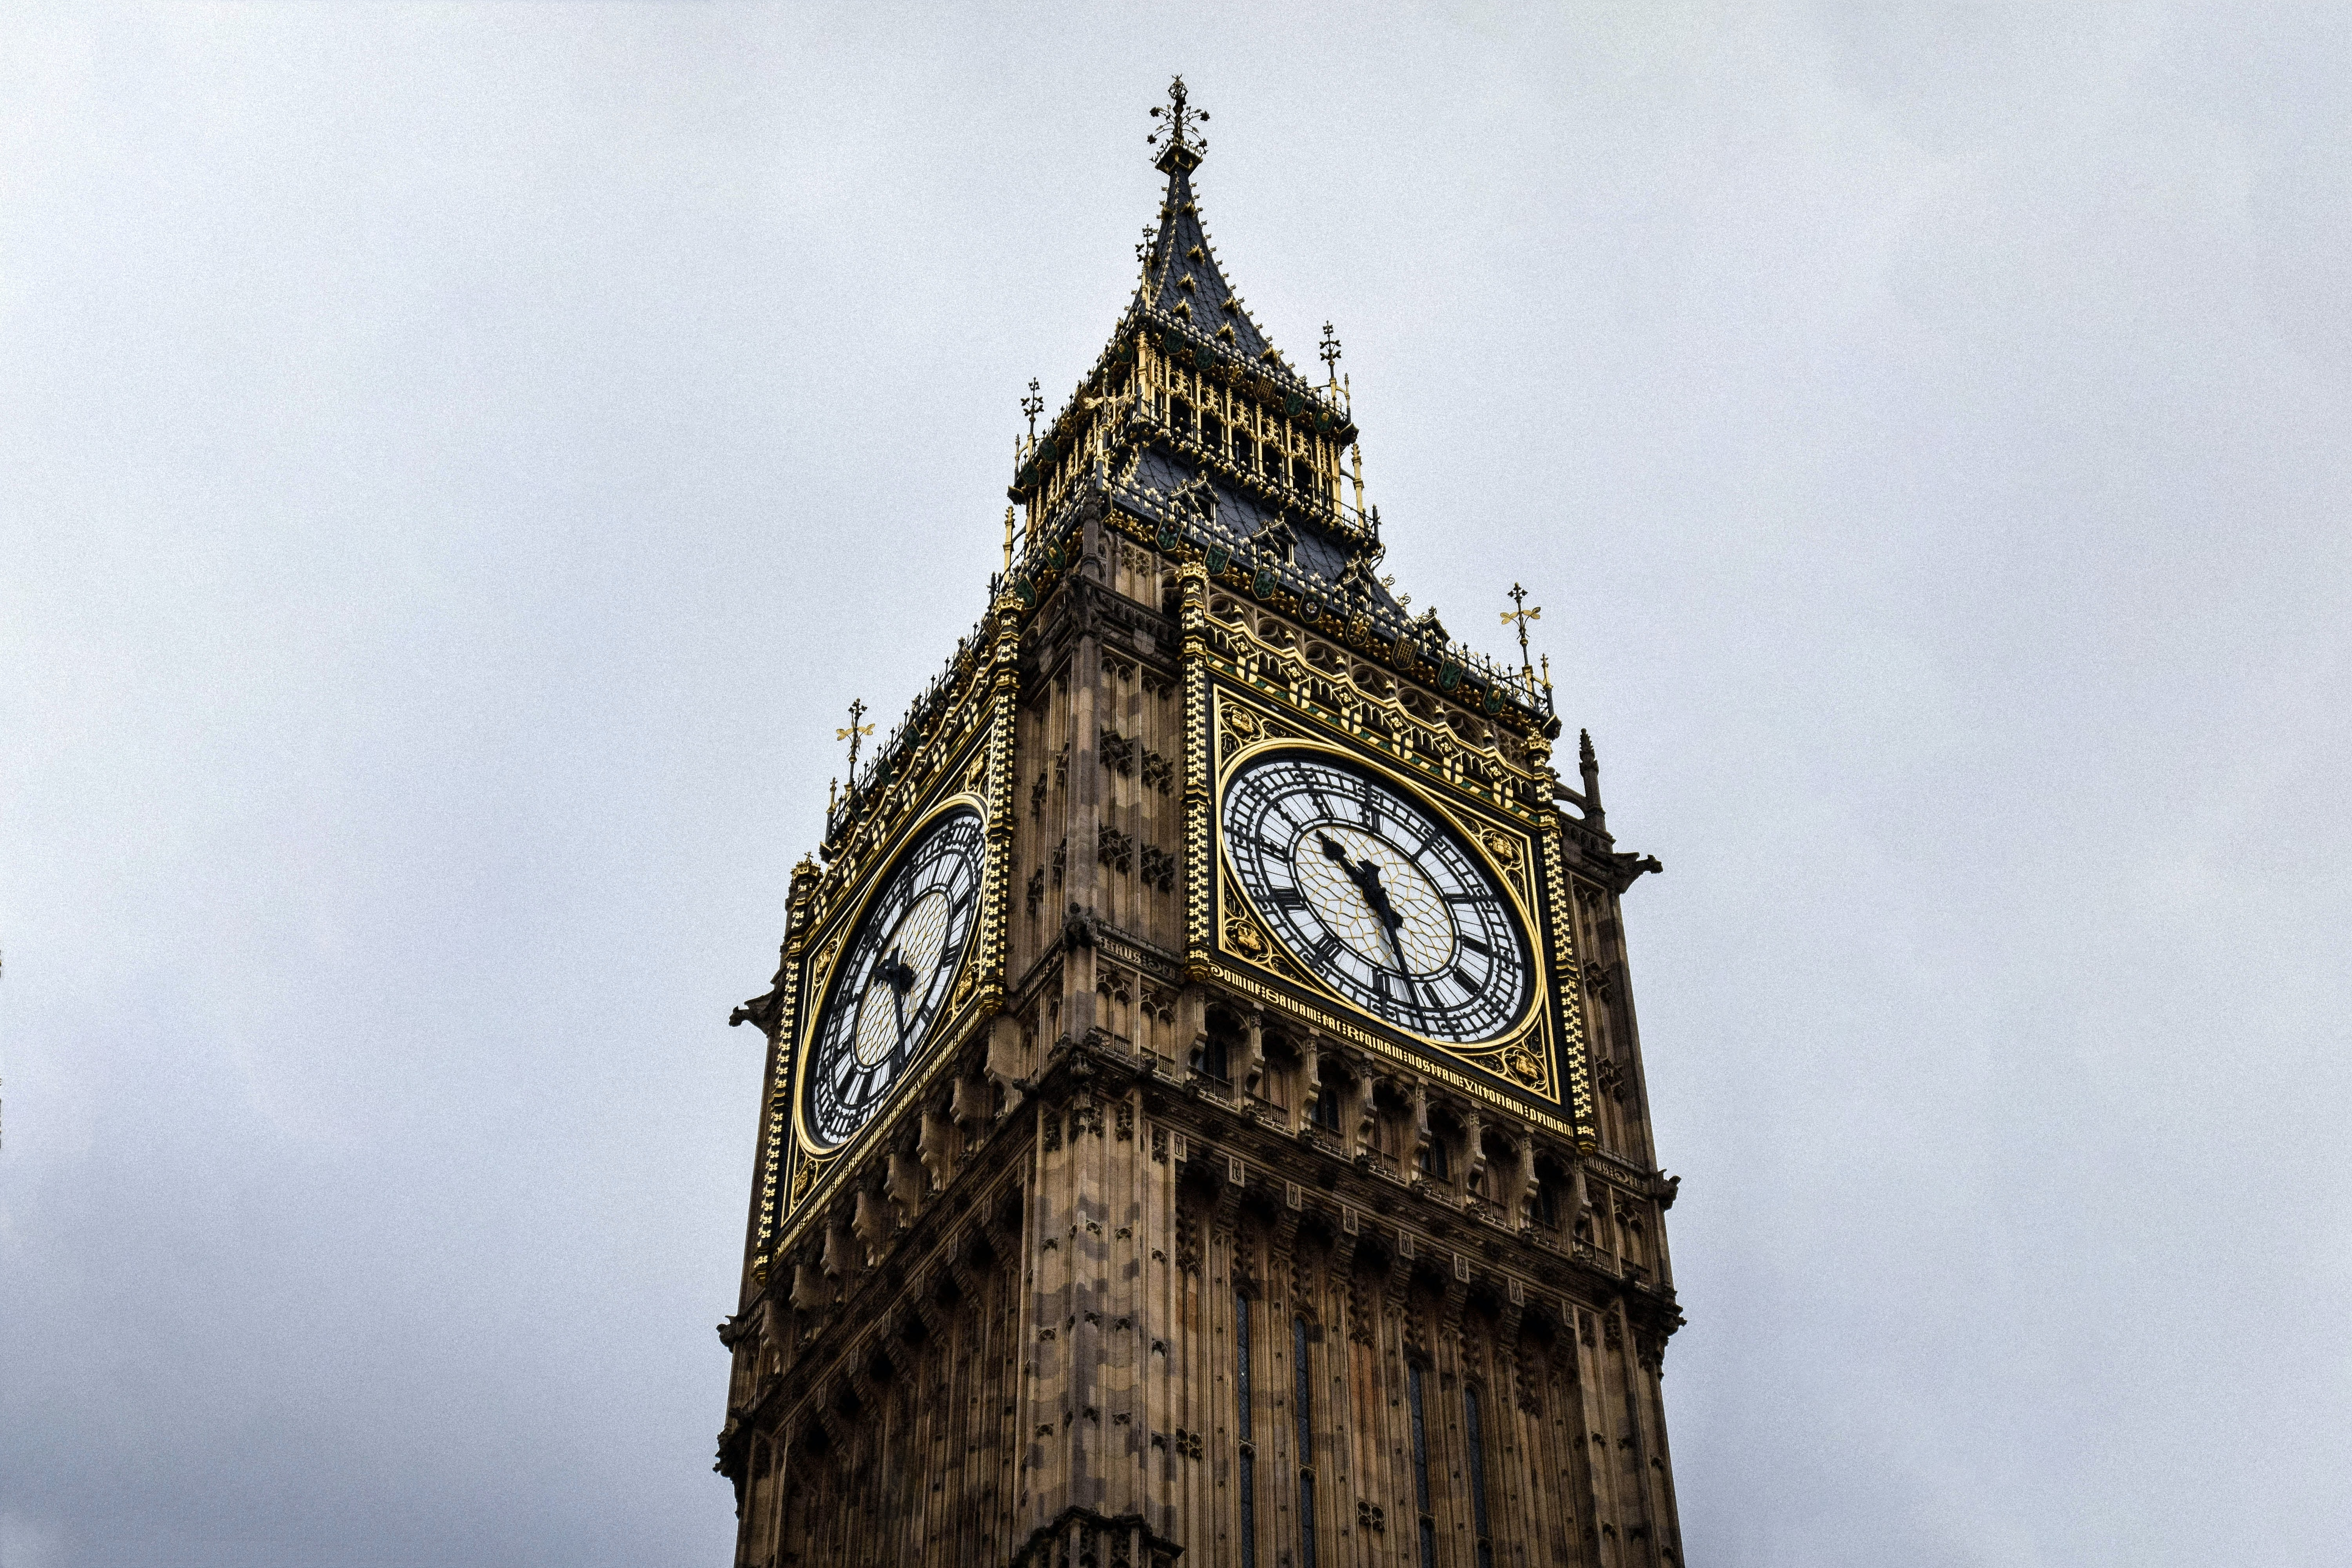 Big Ben, London at daytime